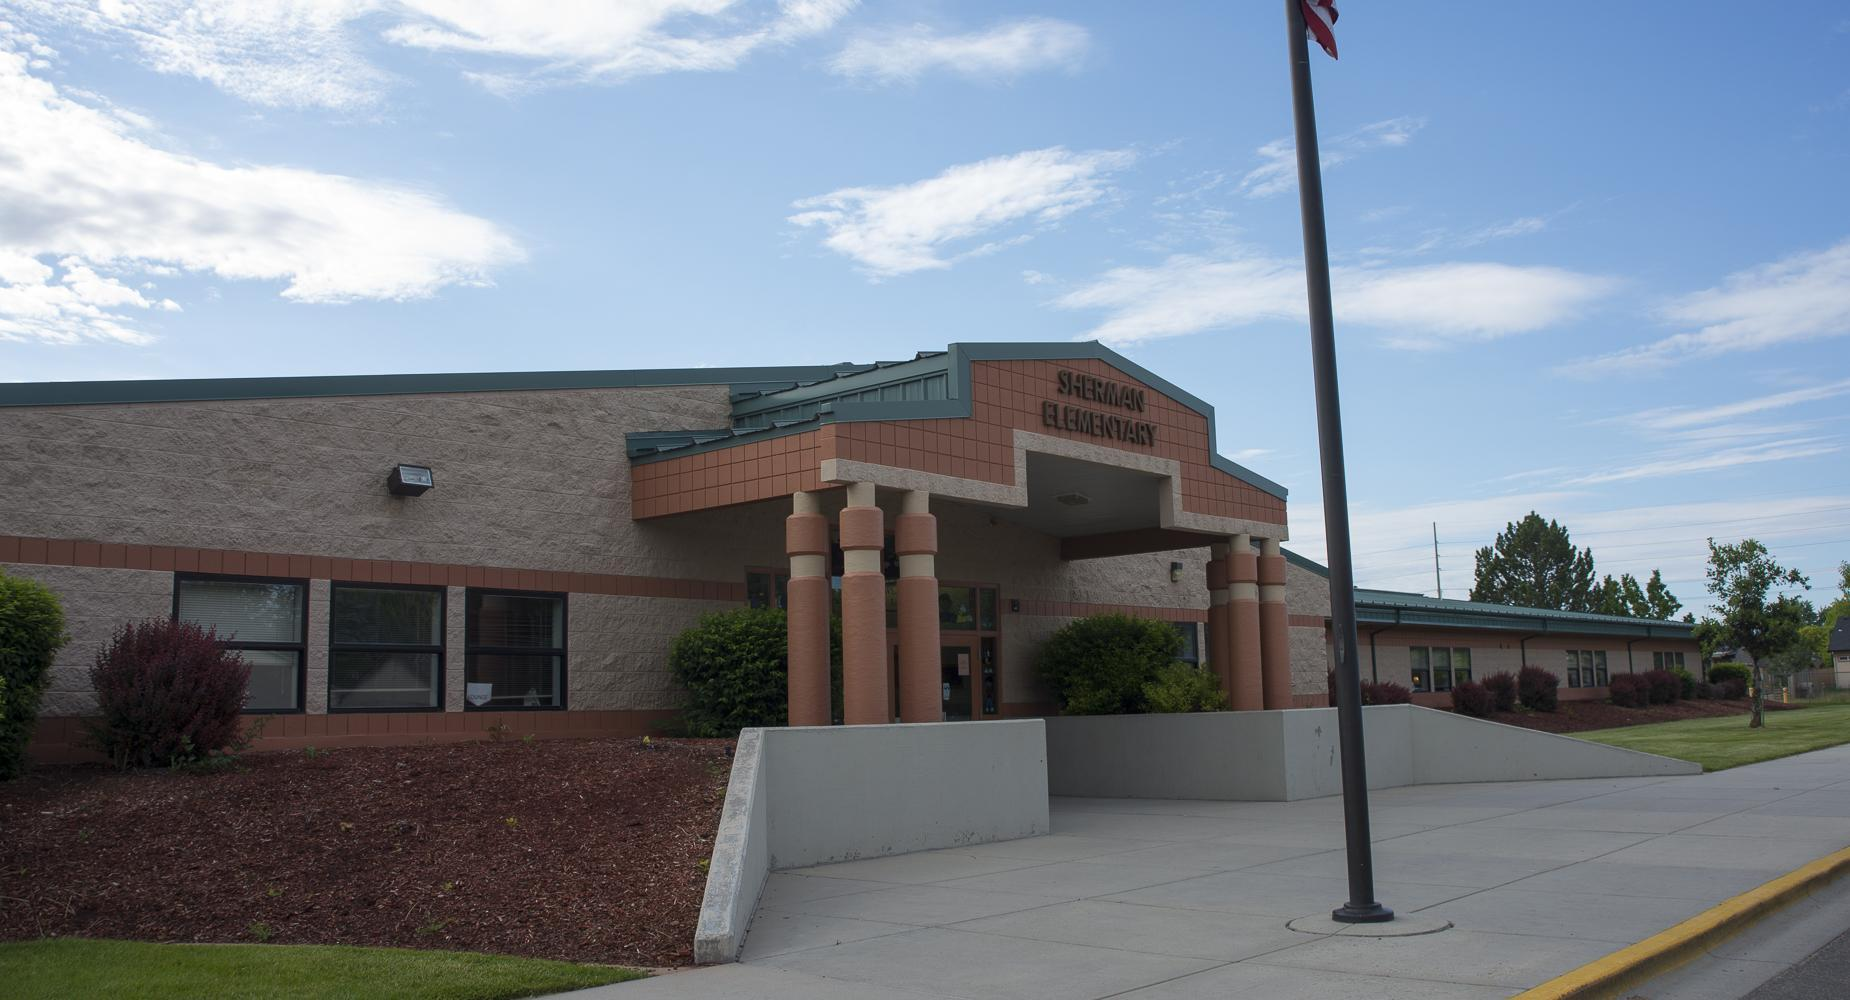 Sherman Elementary exterior.